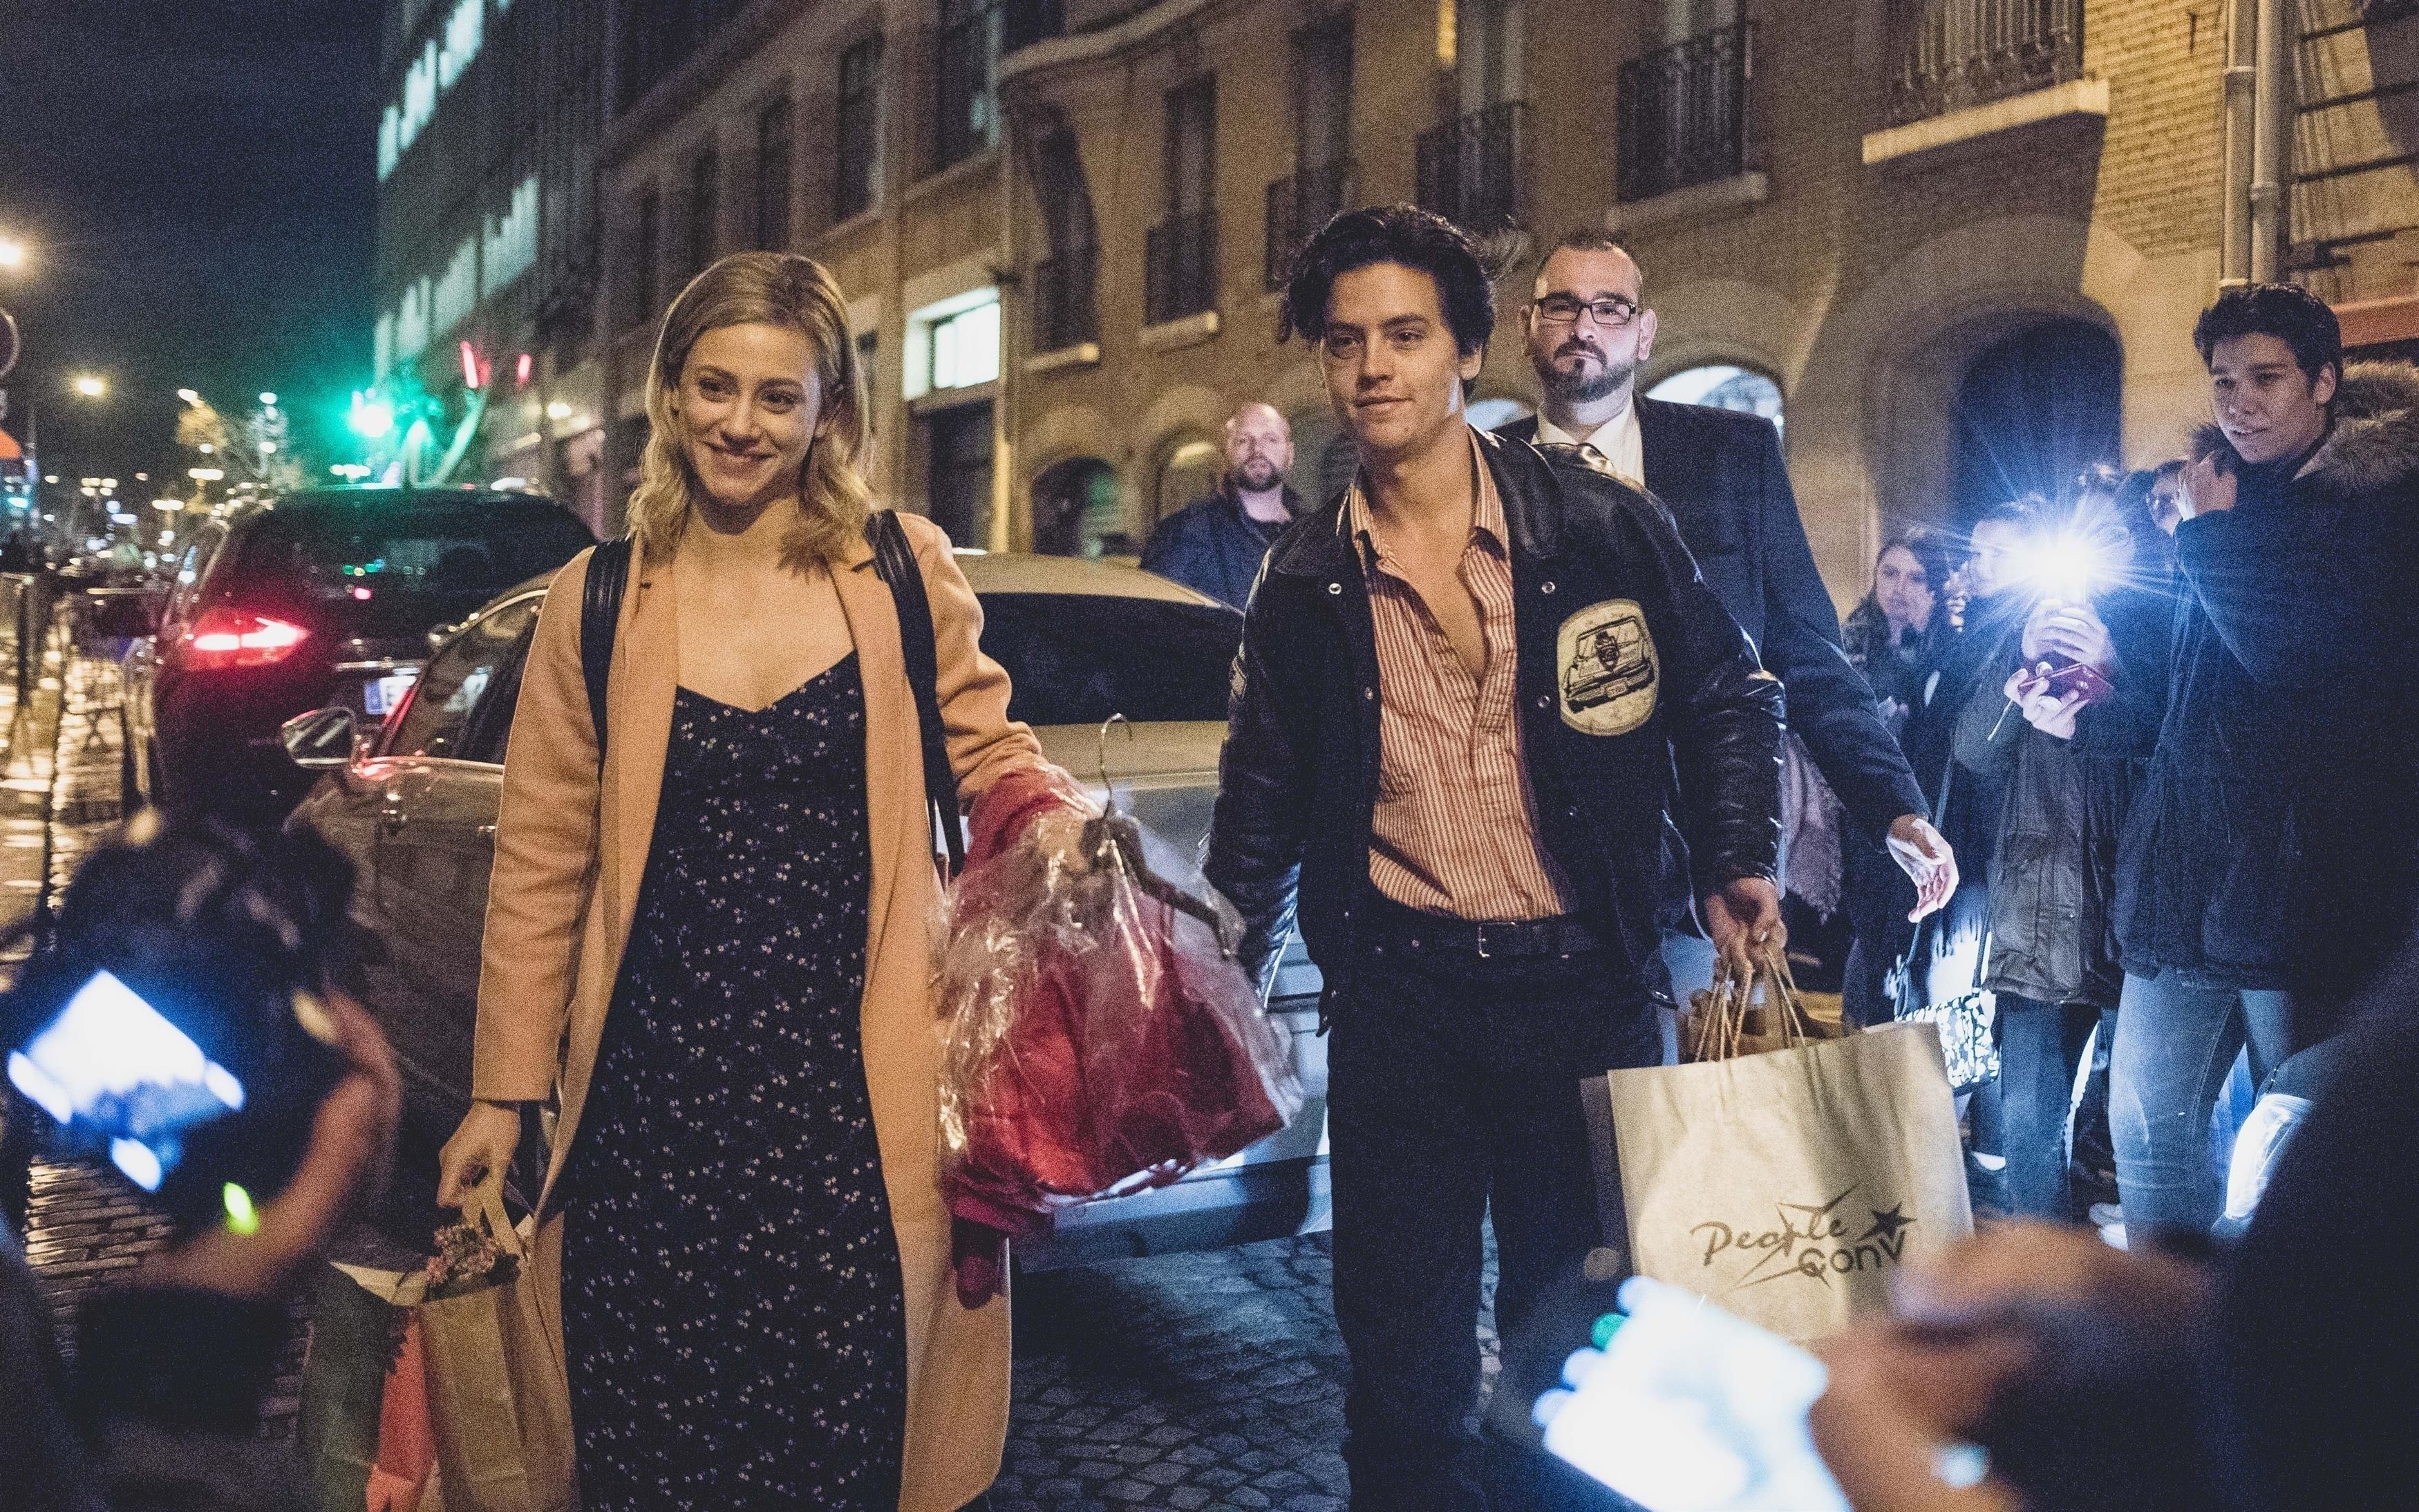 Cole sprouse 2019 dating tv